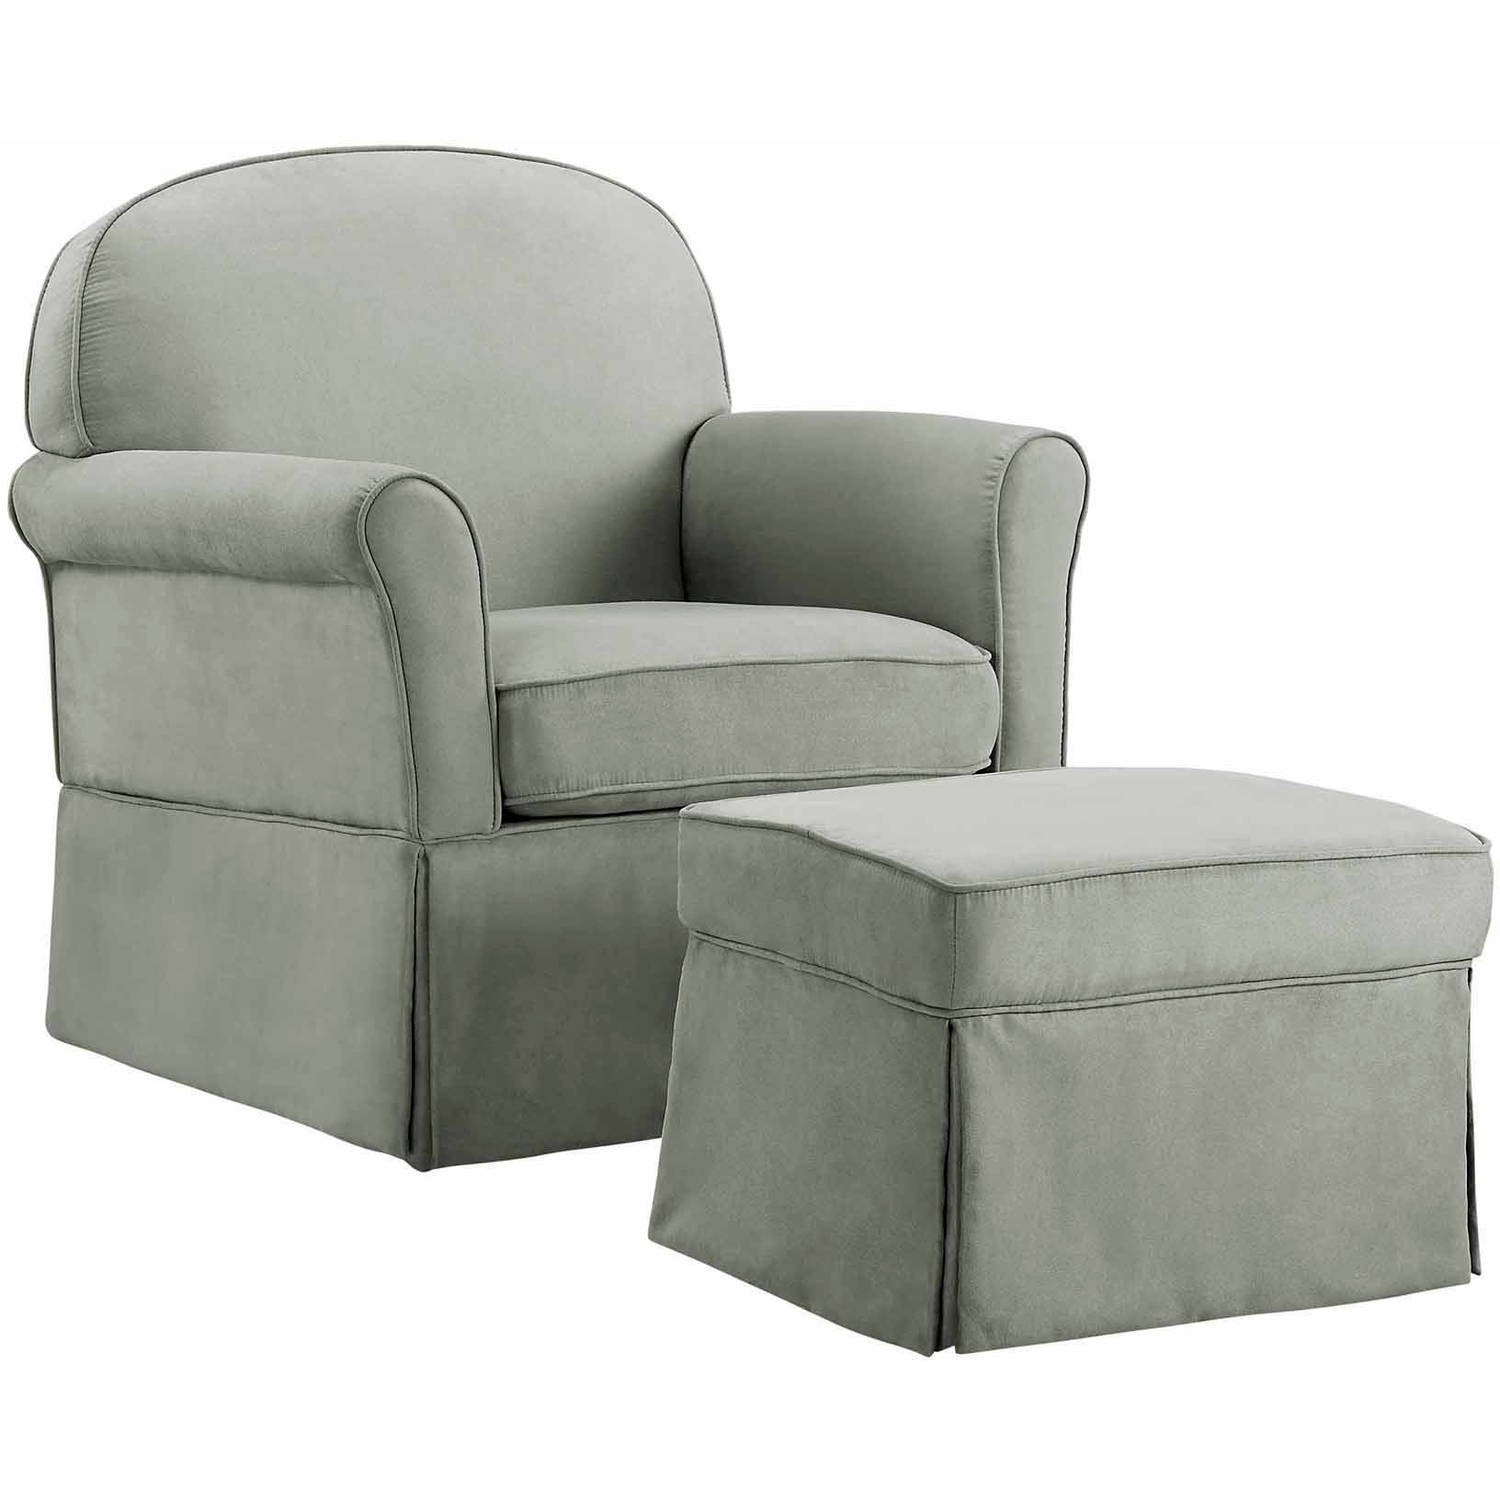 - Dorel Asia Baby Relax Swivel Glider And Ottoman Set - Walmart.com